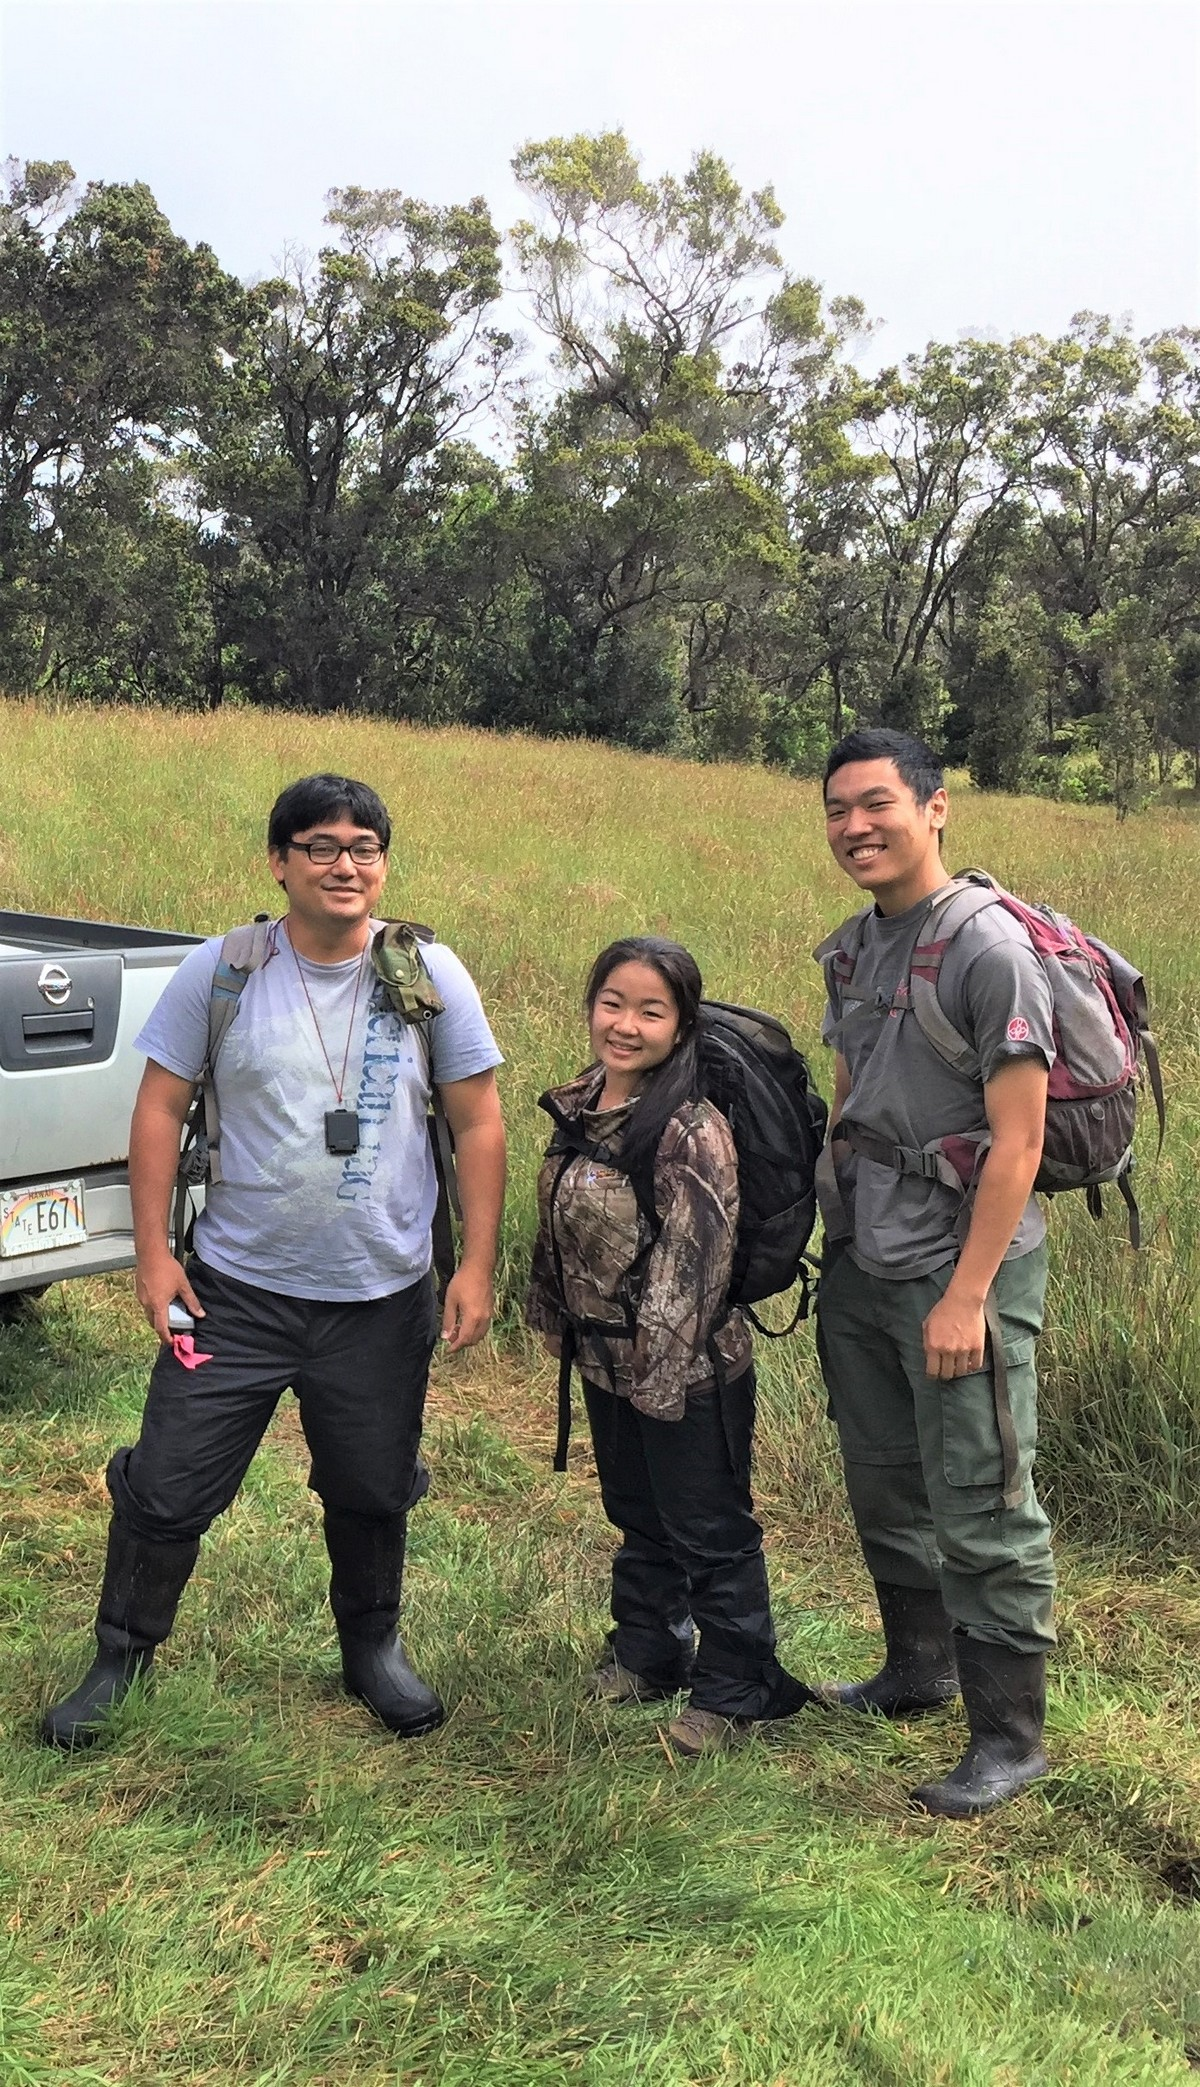 Three researchers (two men, one woman) each with backpack, stand in open field, forest in background.